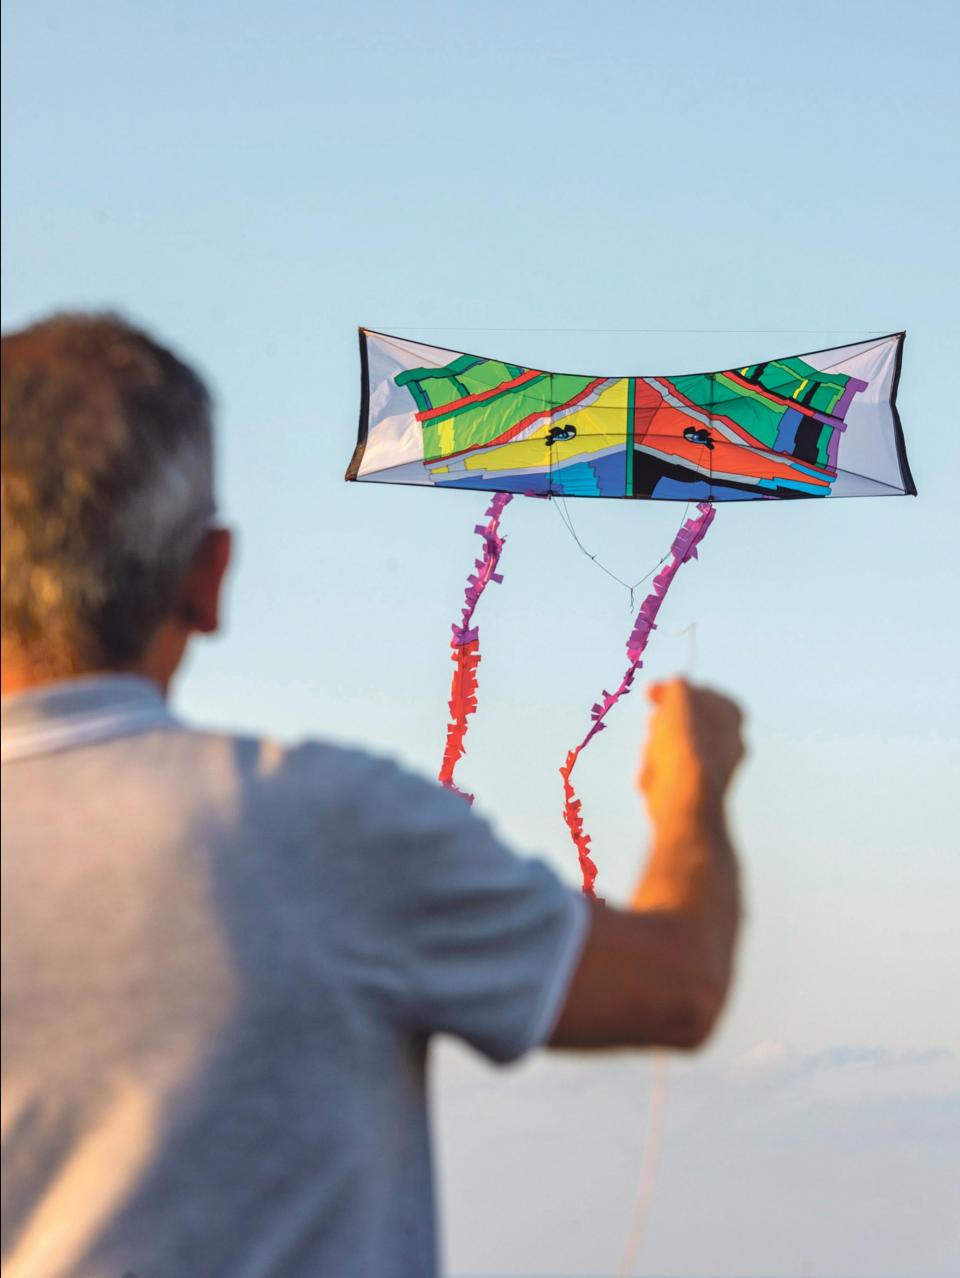 A local enthusiast flying a kite depicting a Maltese luzzu.